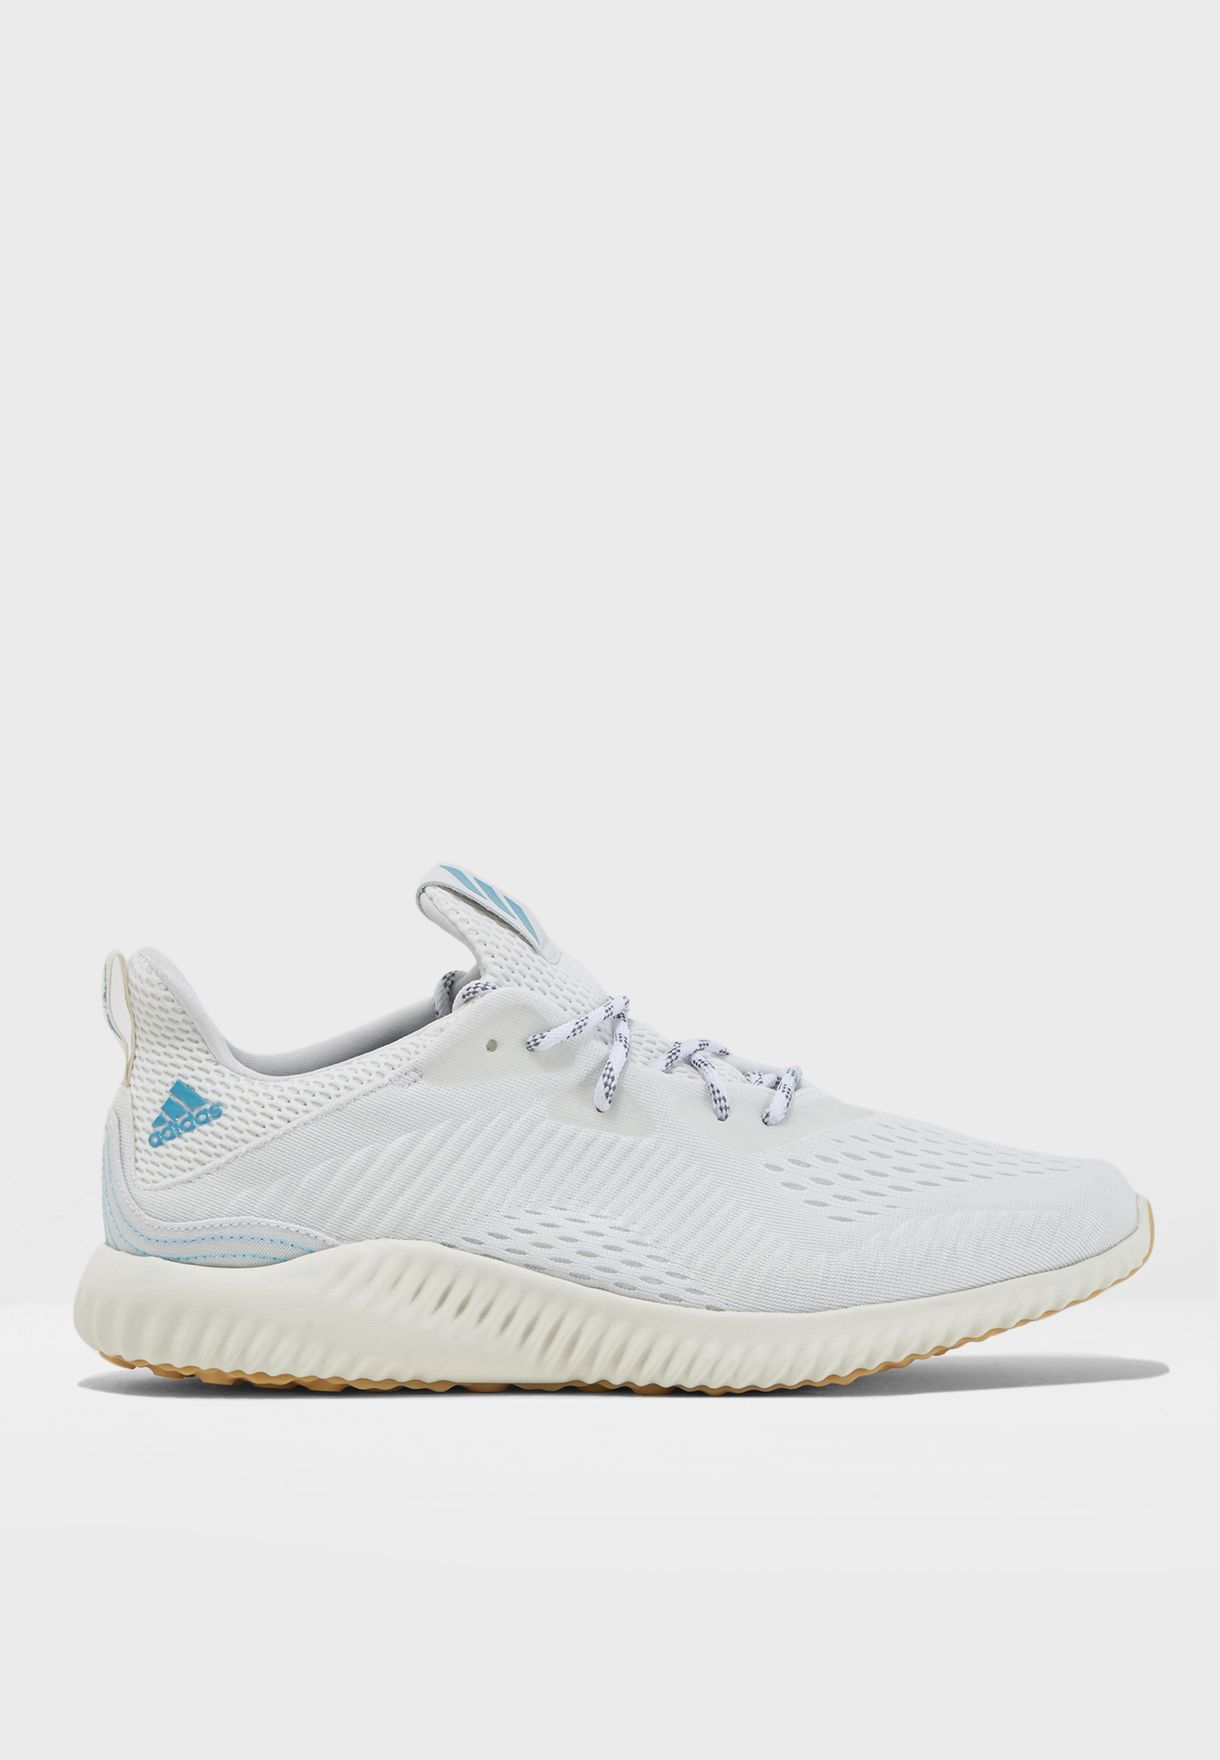 Shop adidas white Alphabounce 1 Parley CQ0784 for Men in UAE ... b0849c73b